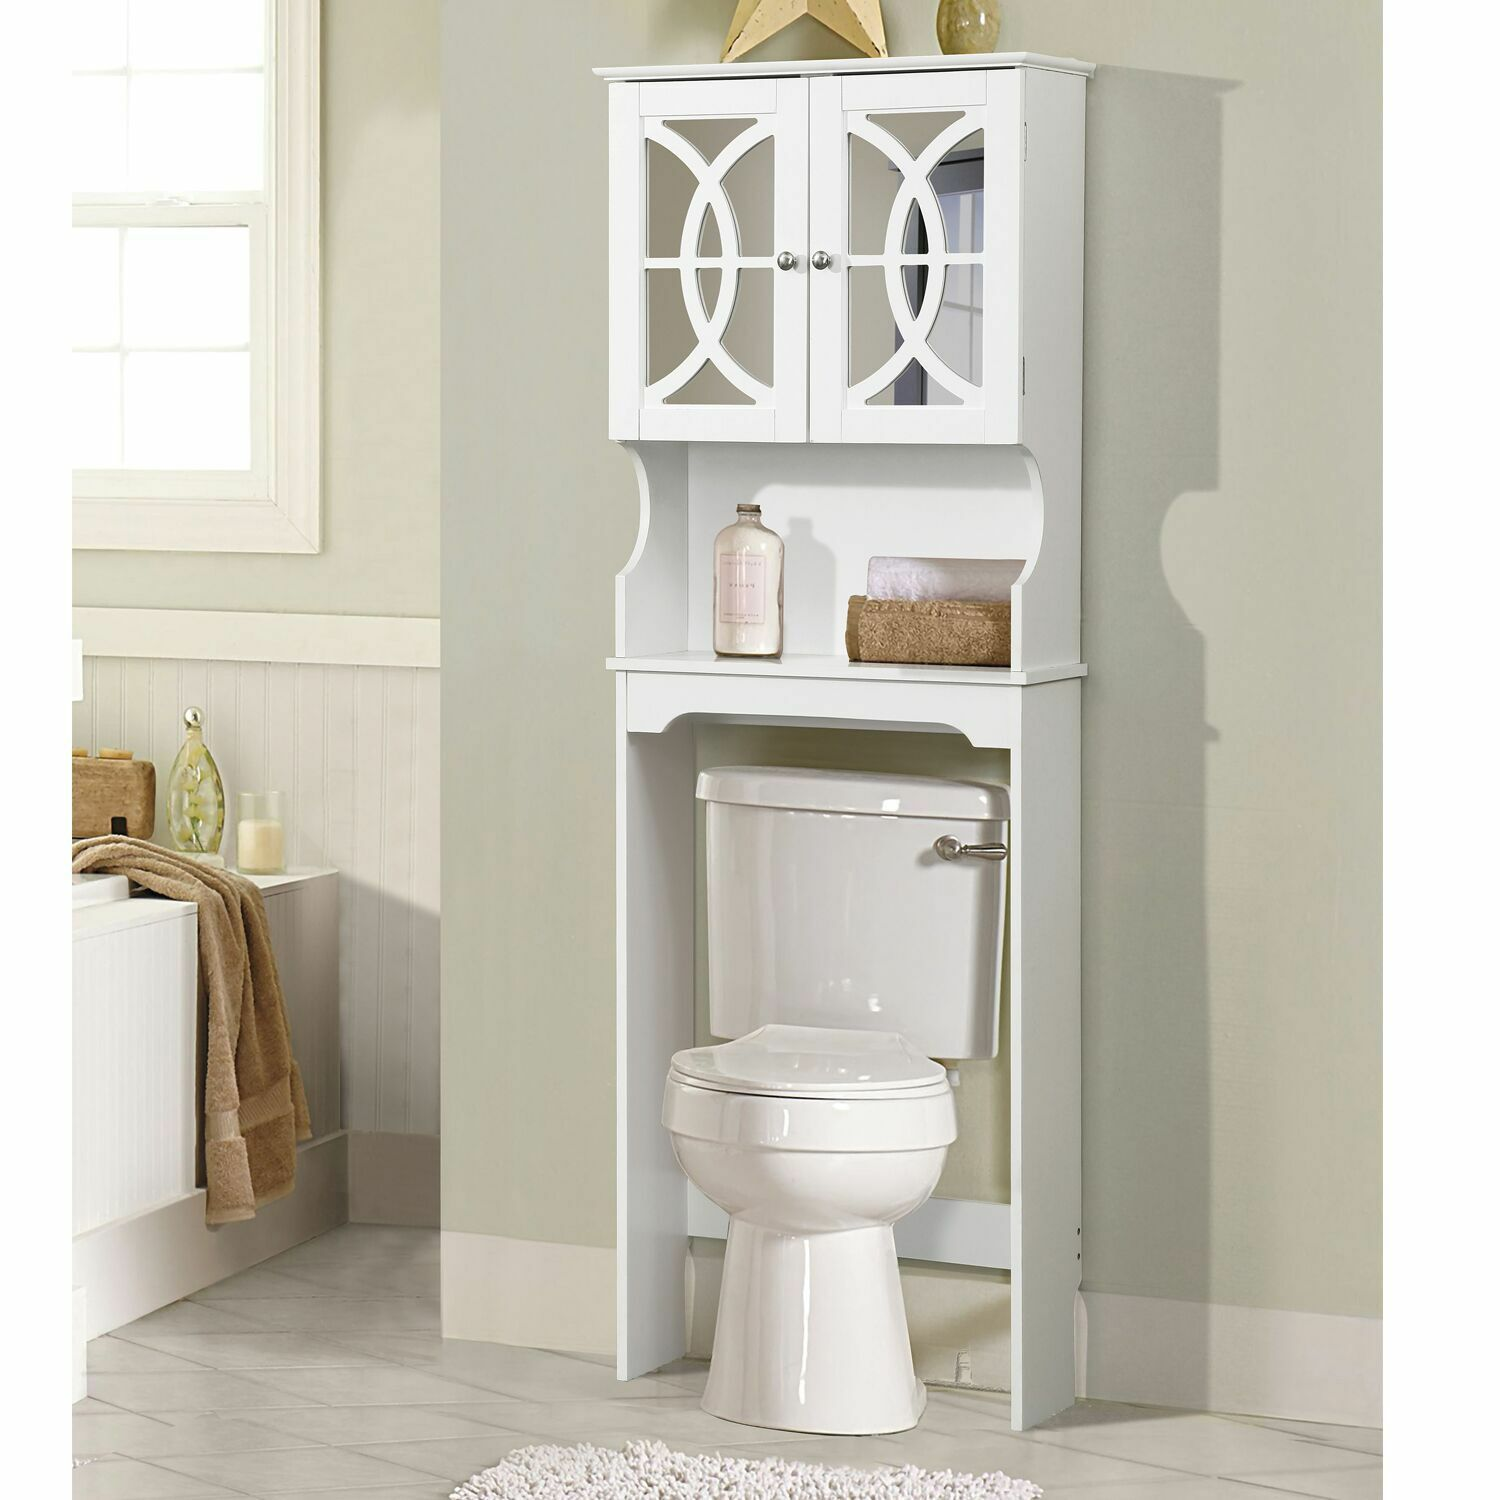 Bathroom Space Saver Cabinet Over The Toilet White Wood Storage Doors Shelf